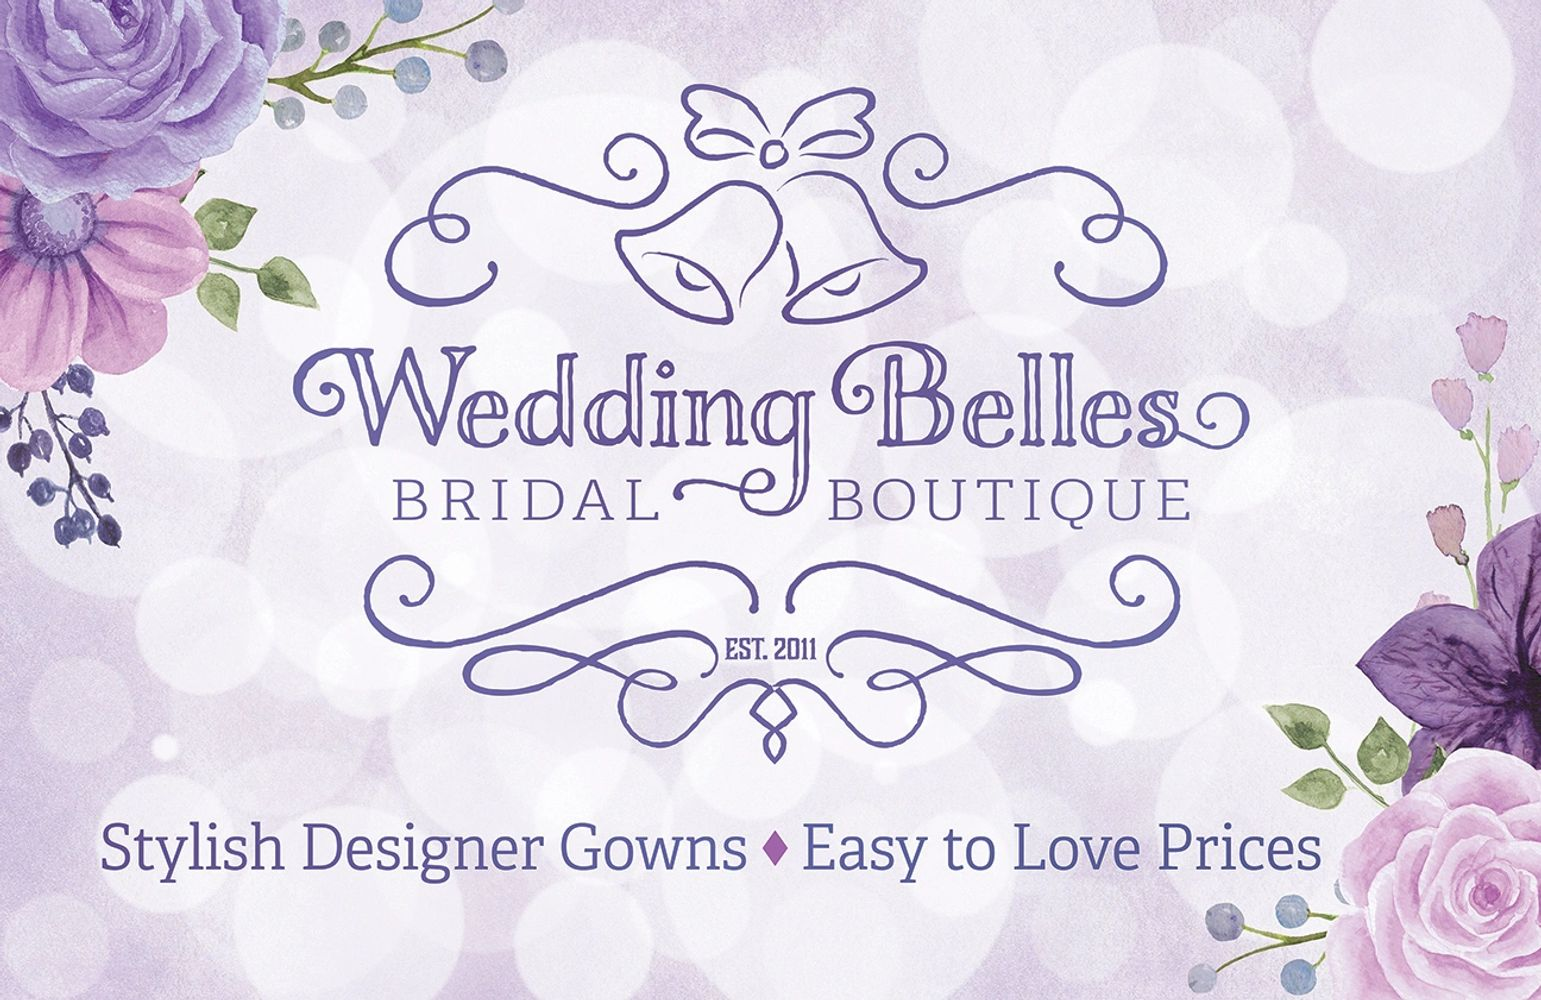 Wedding Belles Bridal Boutique located in Gilbert, Arizona is an affordable designer dress shop